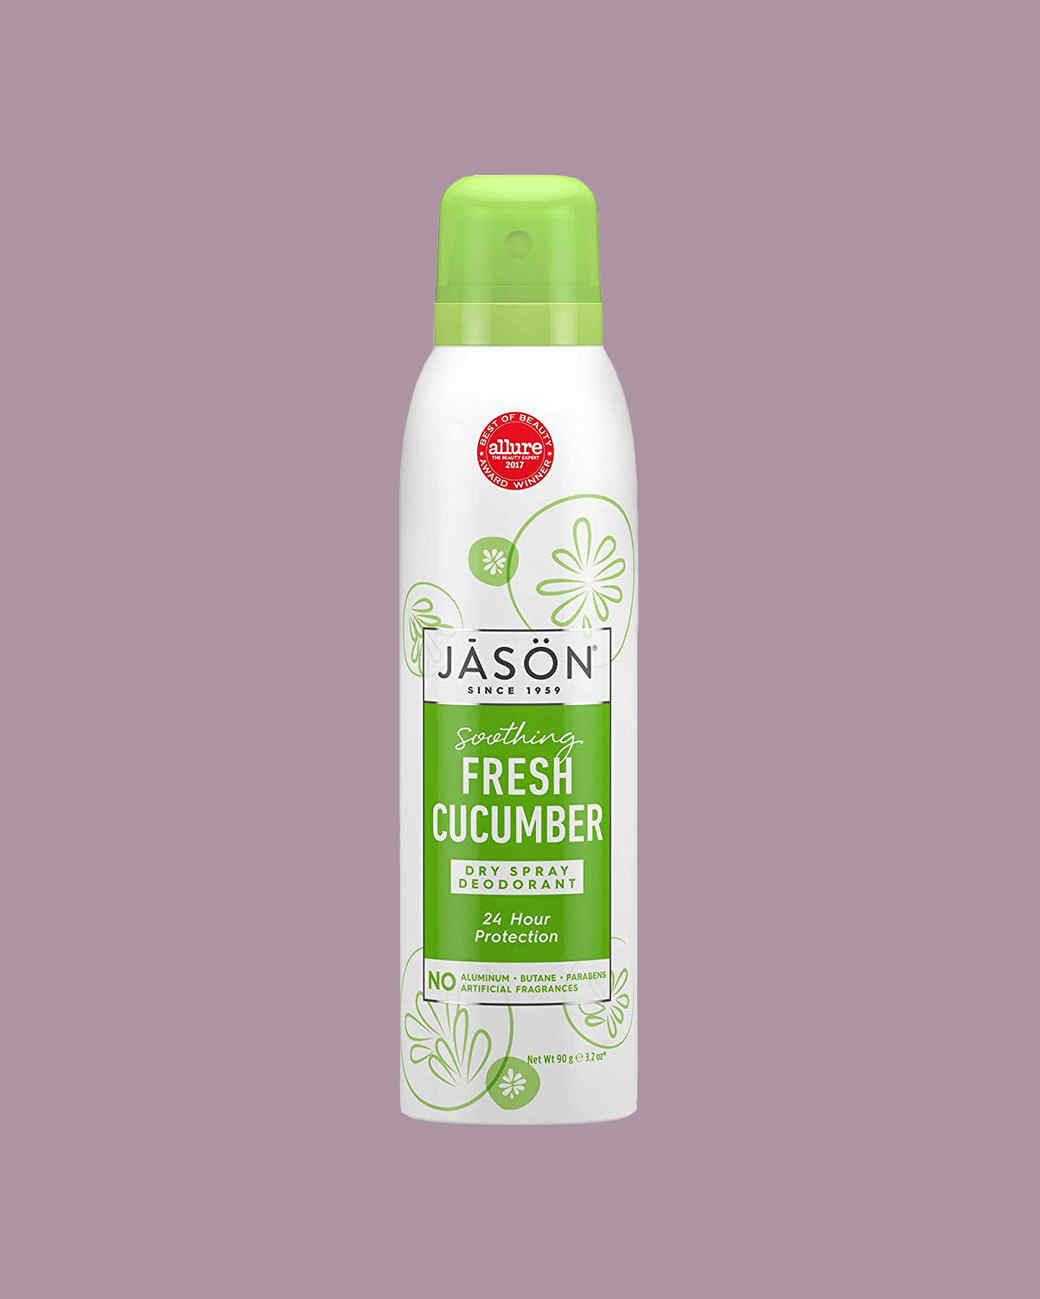 Jason Soothing Fresh Cucumber Dry Spray Deodorant